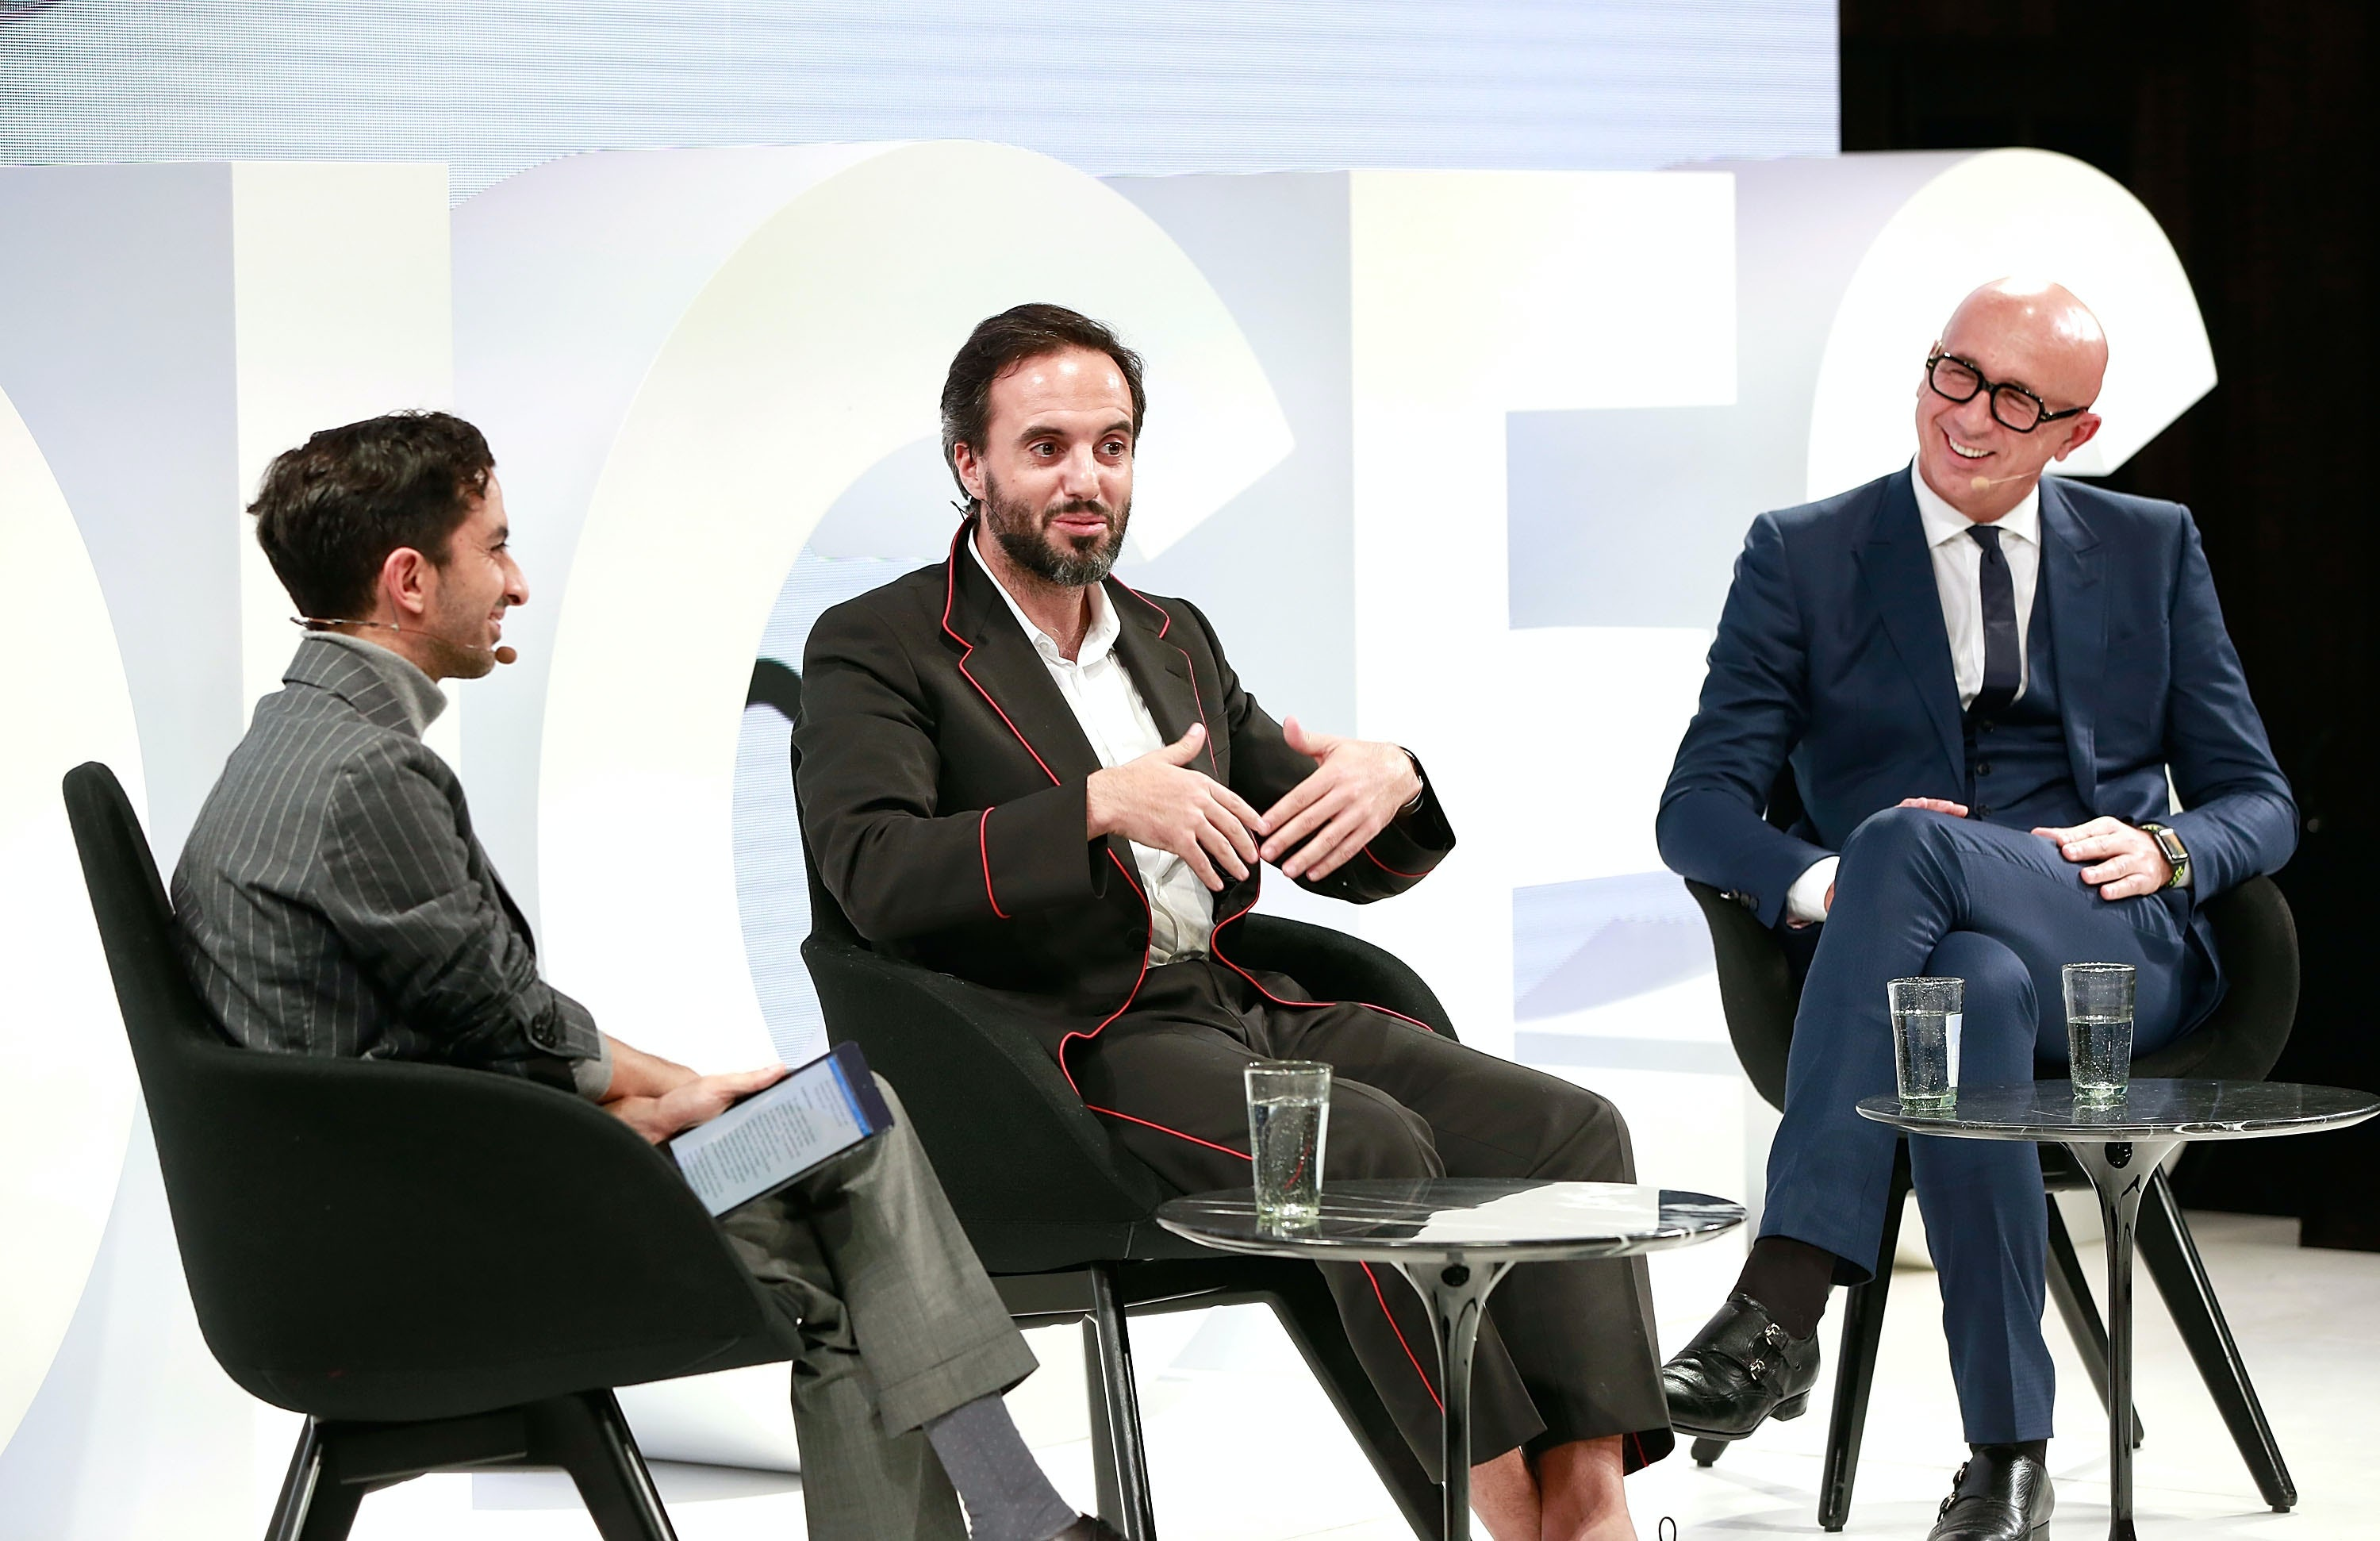 Imran Amed, José Neves and Marco Bizzarri on the VOICES stage | Source: Getty